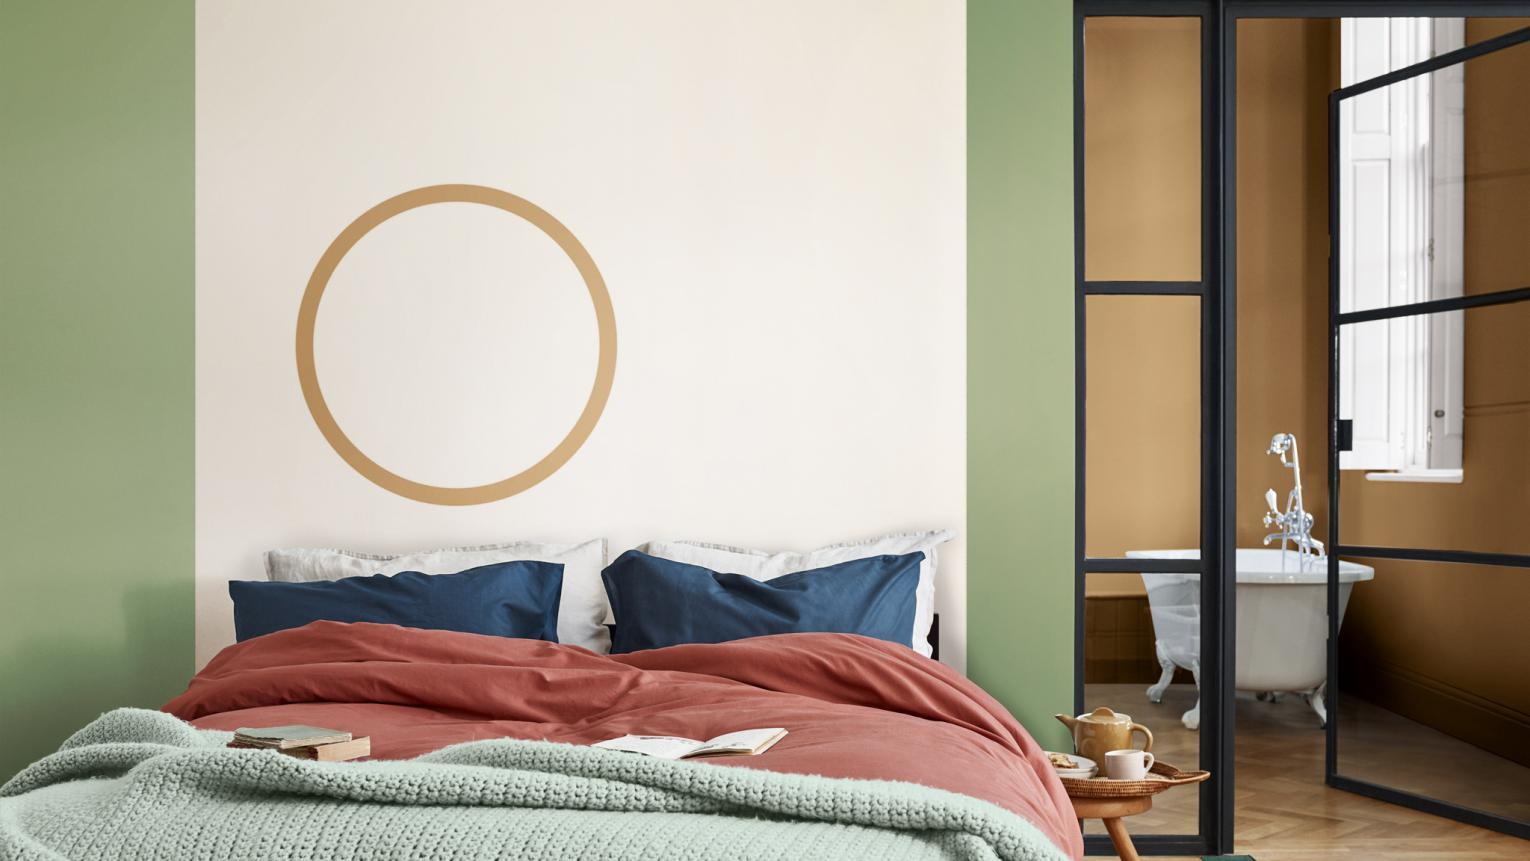 dulux-colour-futures-colour-of-the-year-2019-a-place-to-love-bedroom-inspiration-global-13